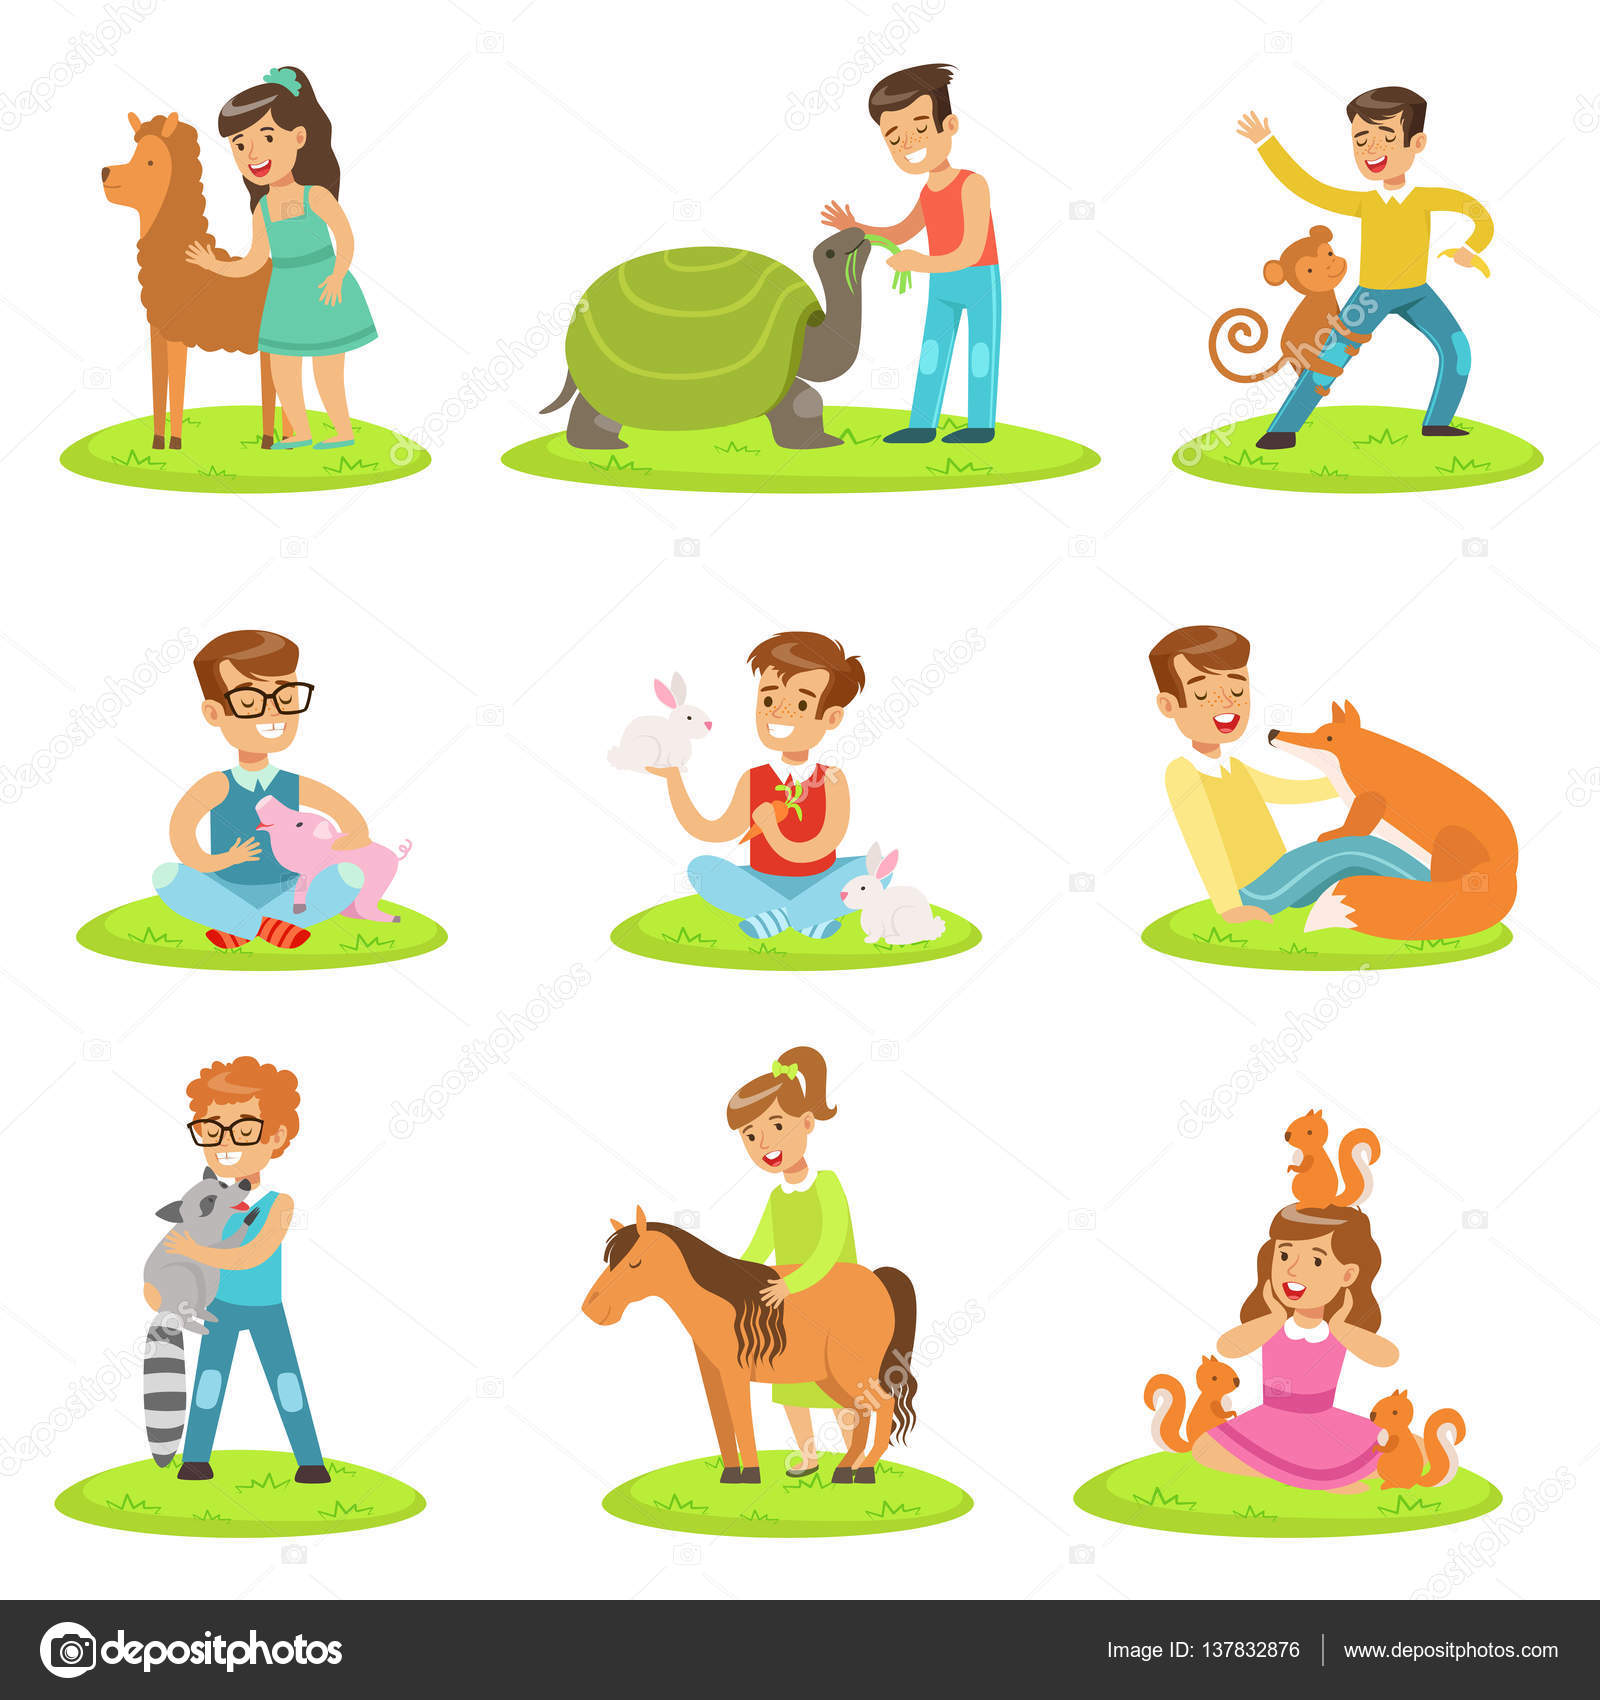 Zoo clipart small animal Illustration Children Petting With Collection